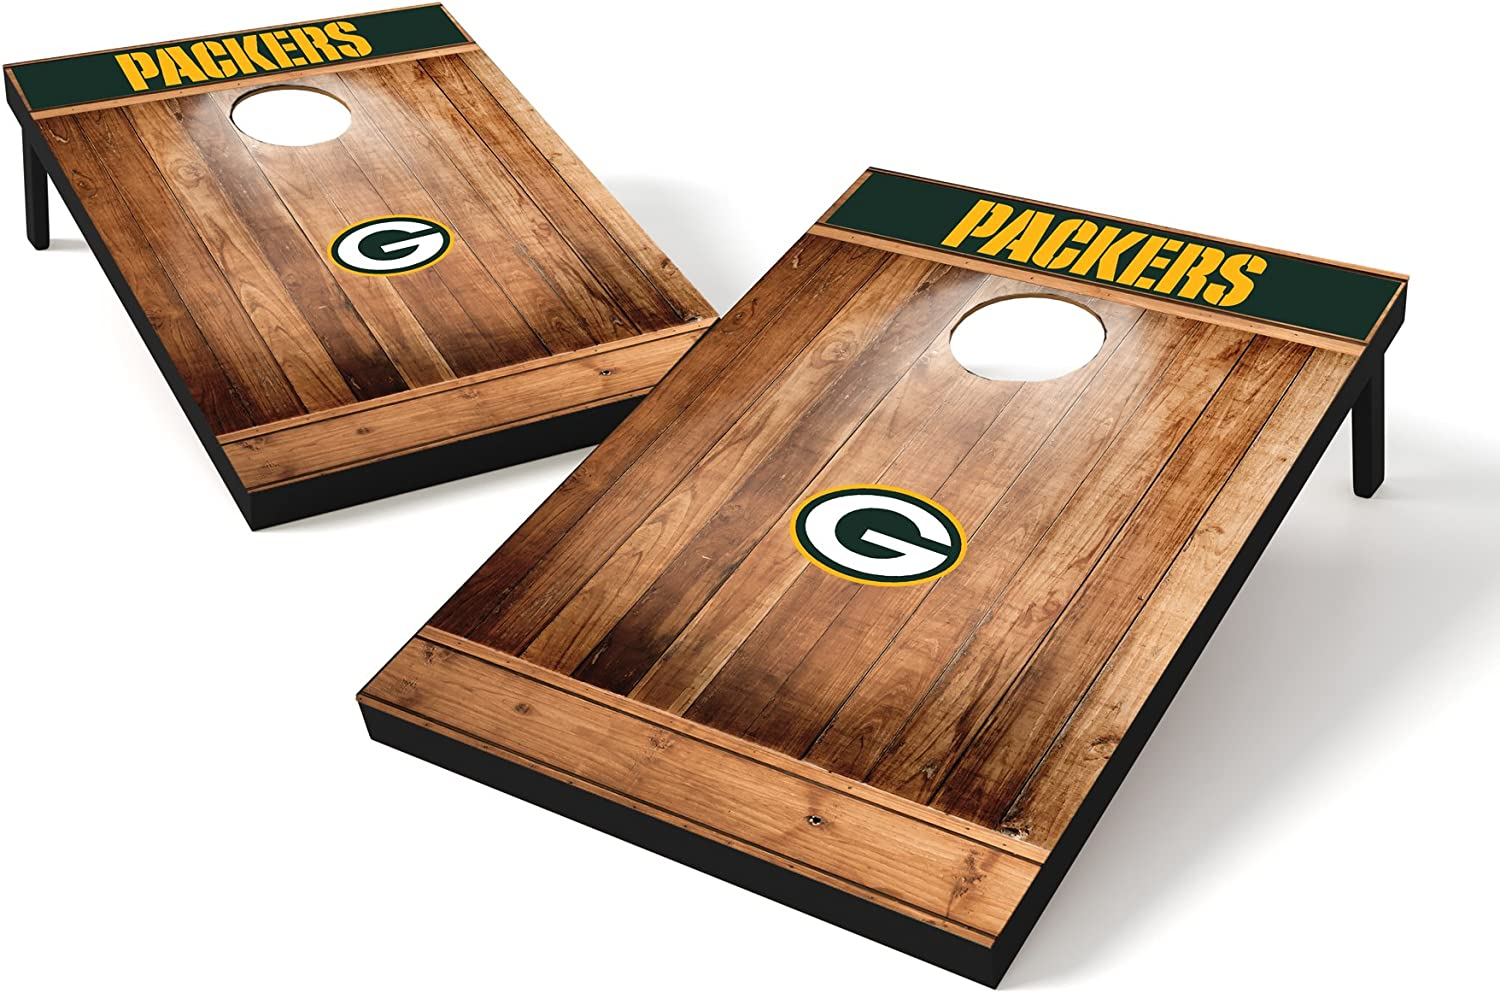 Wild Sports NFLCornhole Outdoor Game Set OFFicial shop New Free Shipping Foot 3' - x Recreat 2'